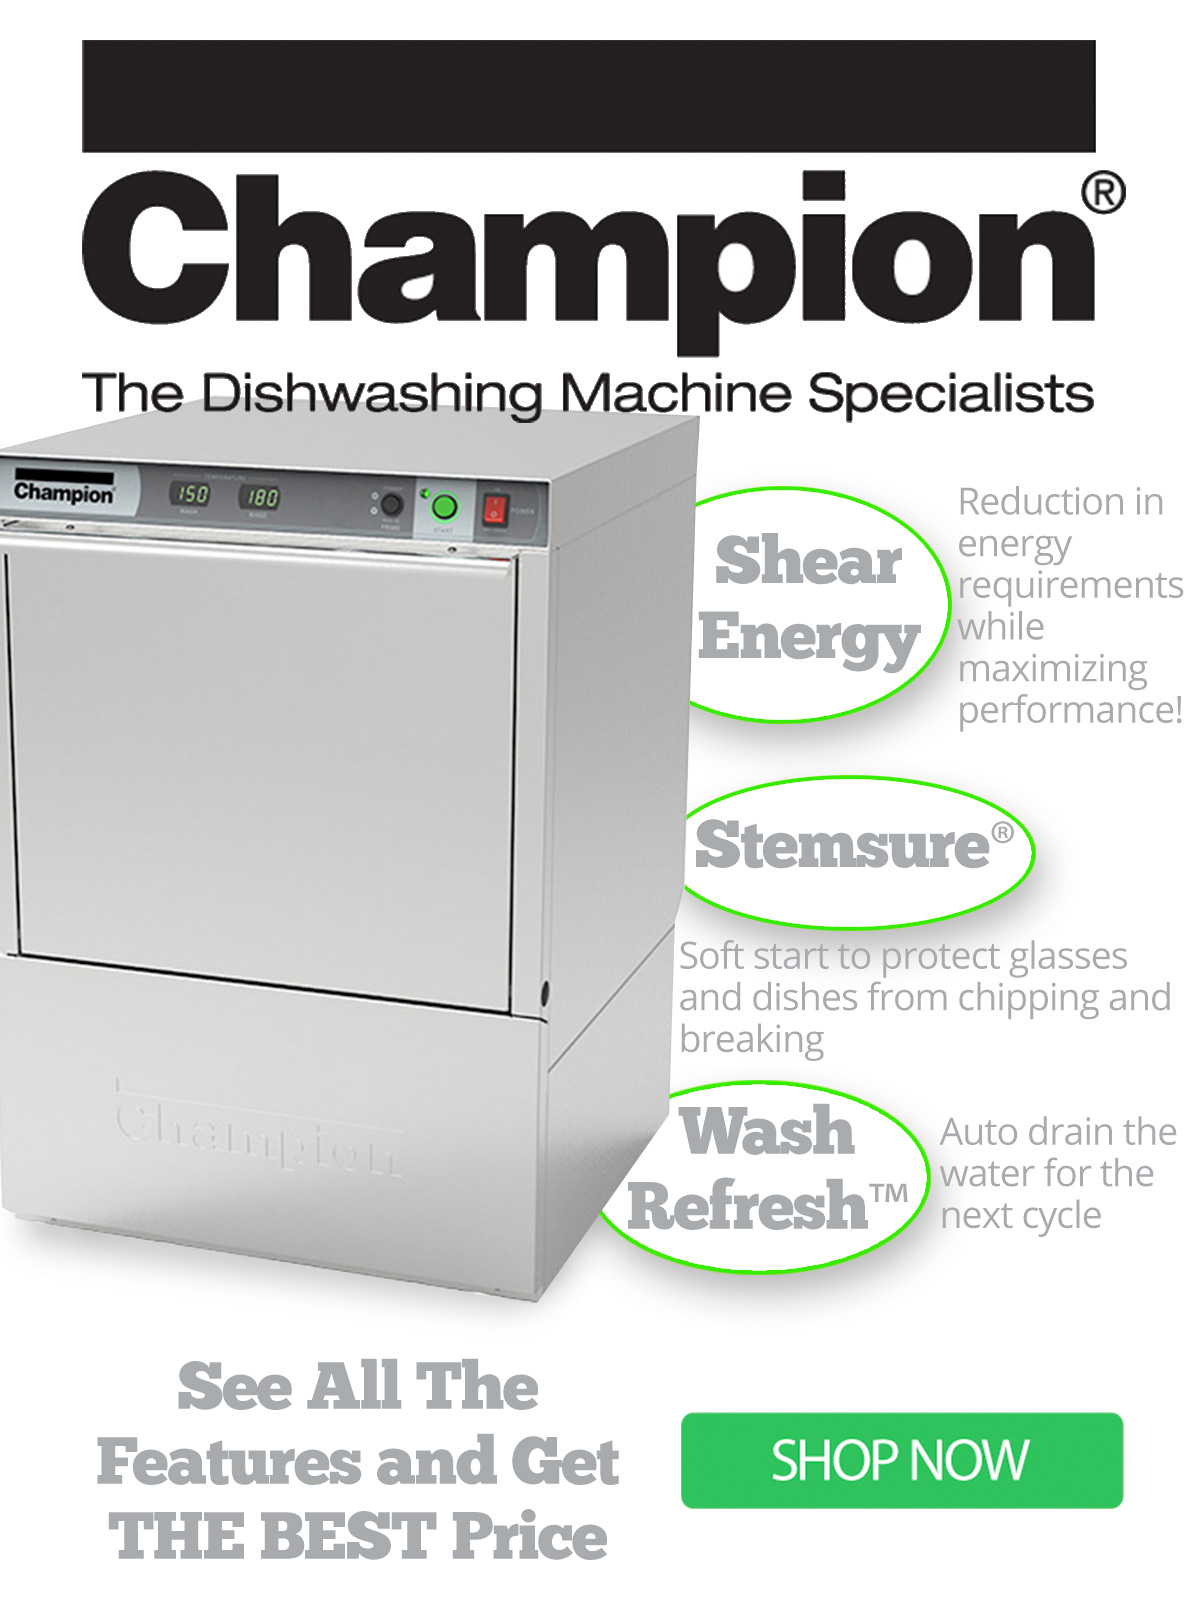 Get the best price on the best dishwasher - shop this Champion Undercounter Dishwasher today!